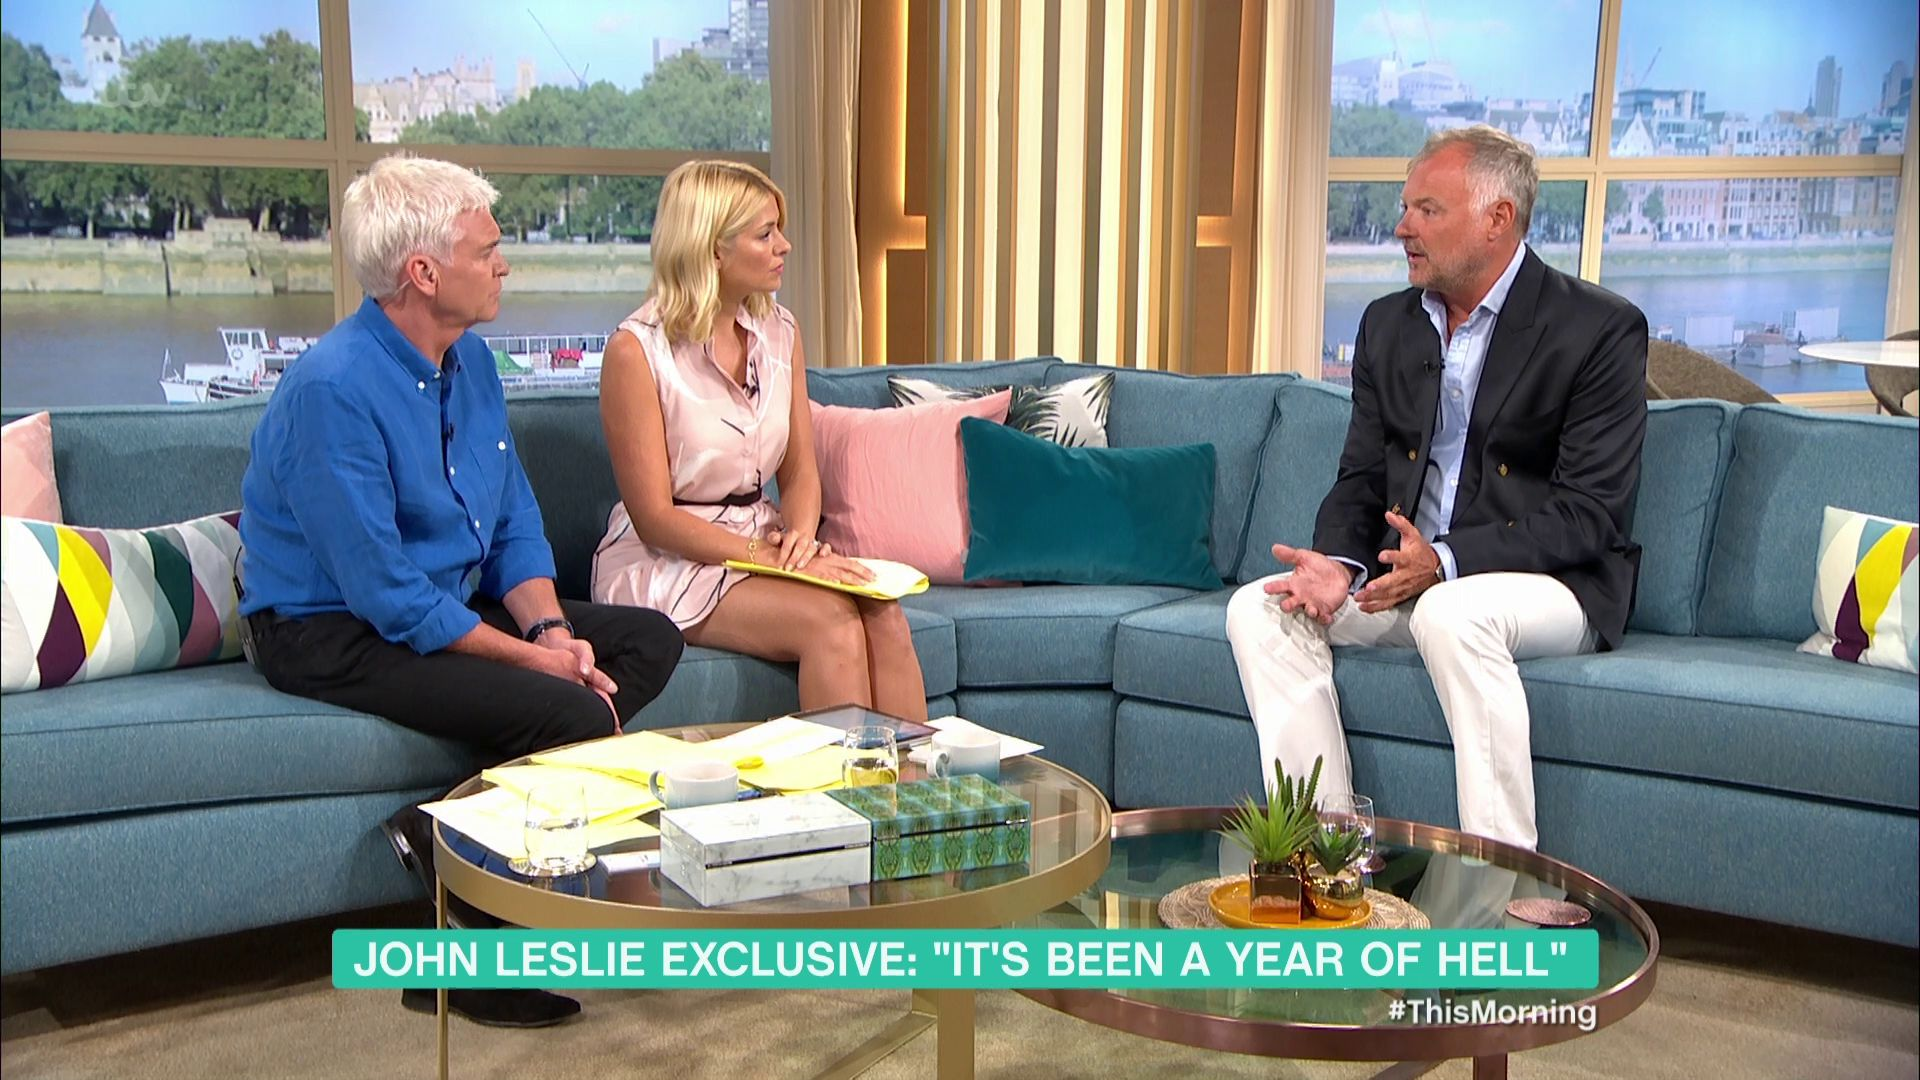 John Leslie 'In Bits' As He Returns To 'This Morning' After Sexual Misconduct